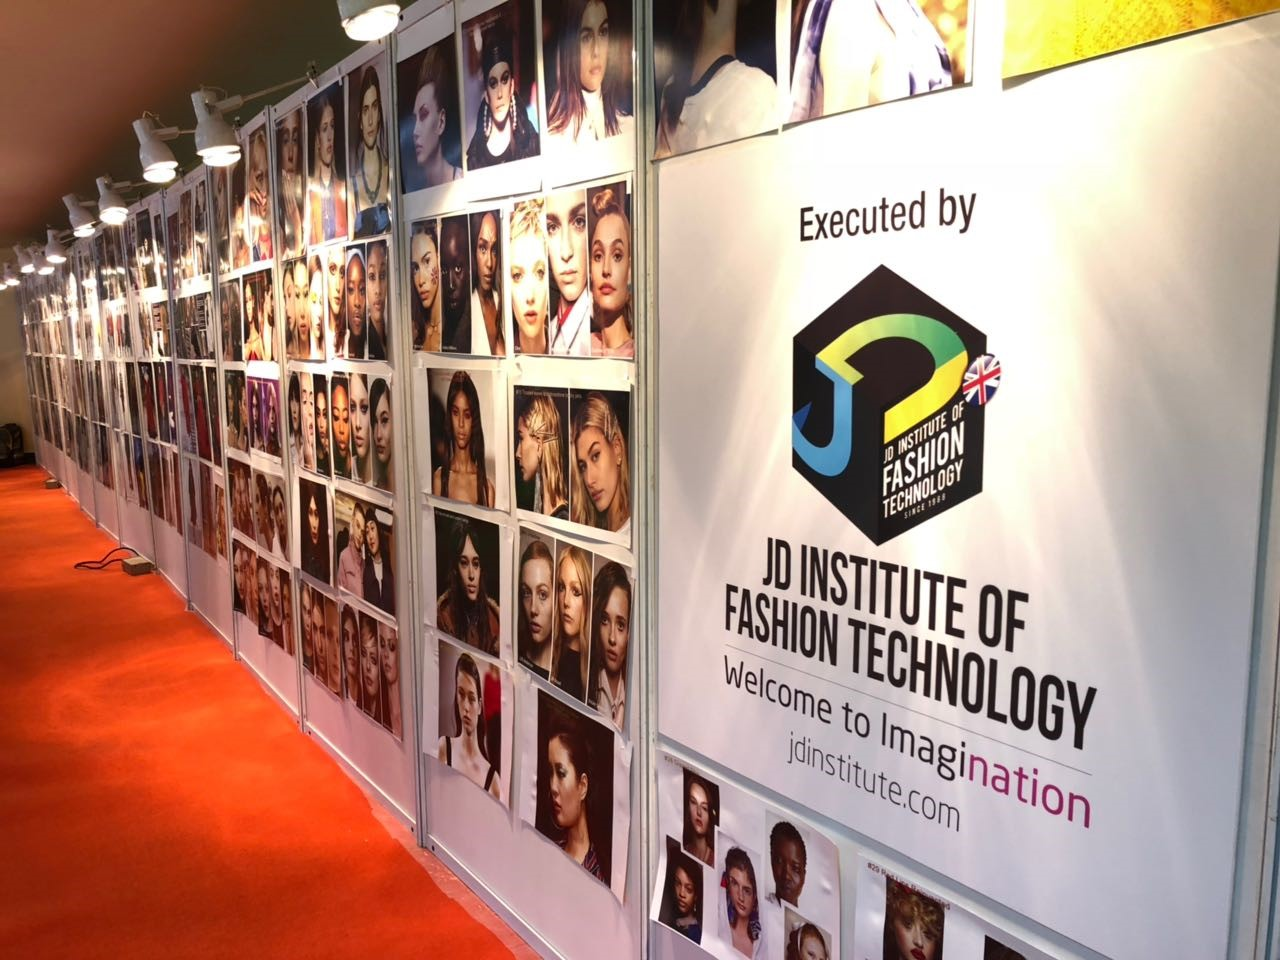 trade show 2018 - TREND PAVILION1 - JD Institute at the Fabrics & Accessories Trade Show 2018